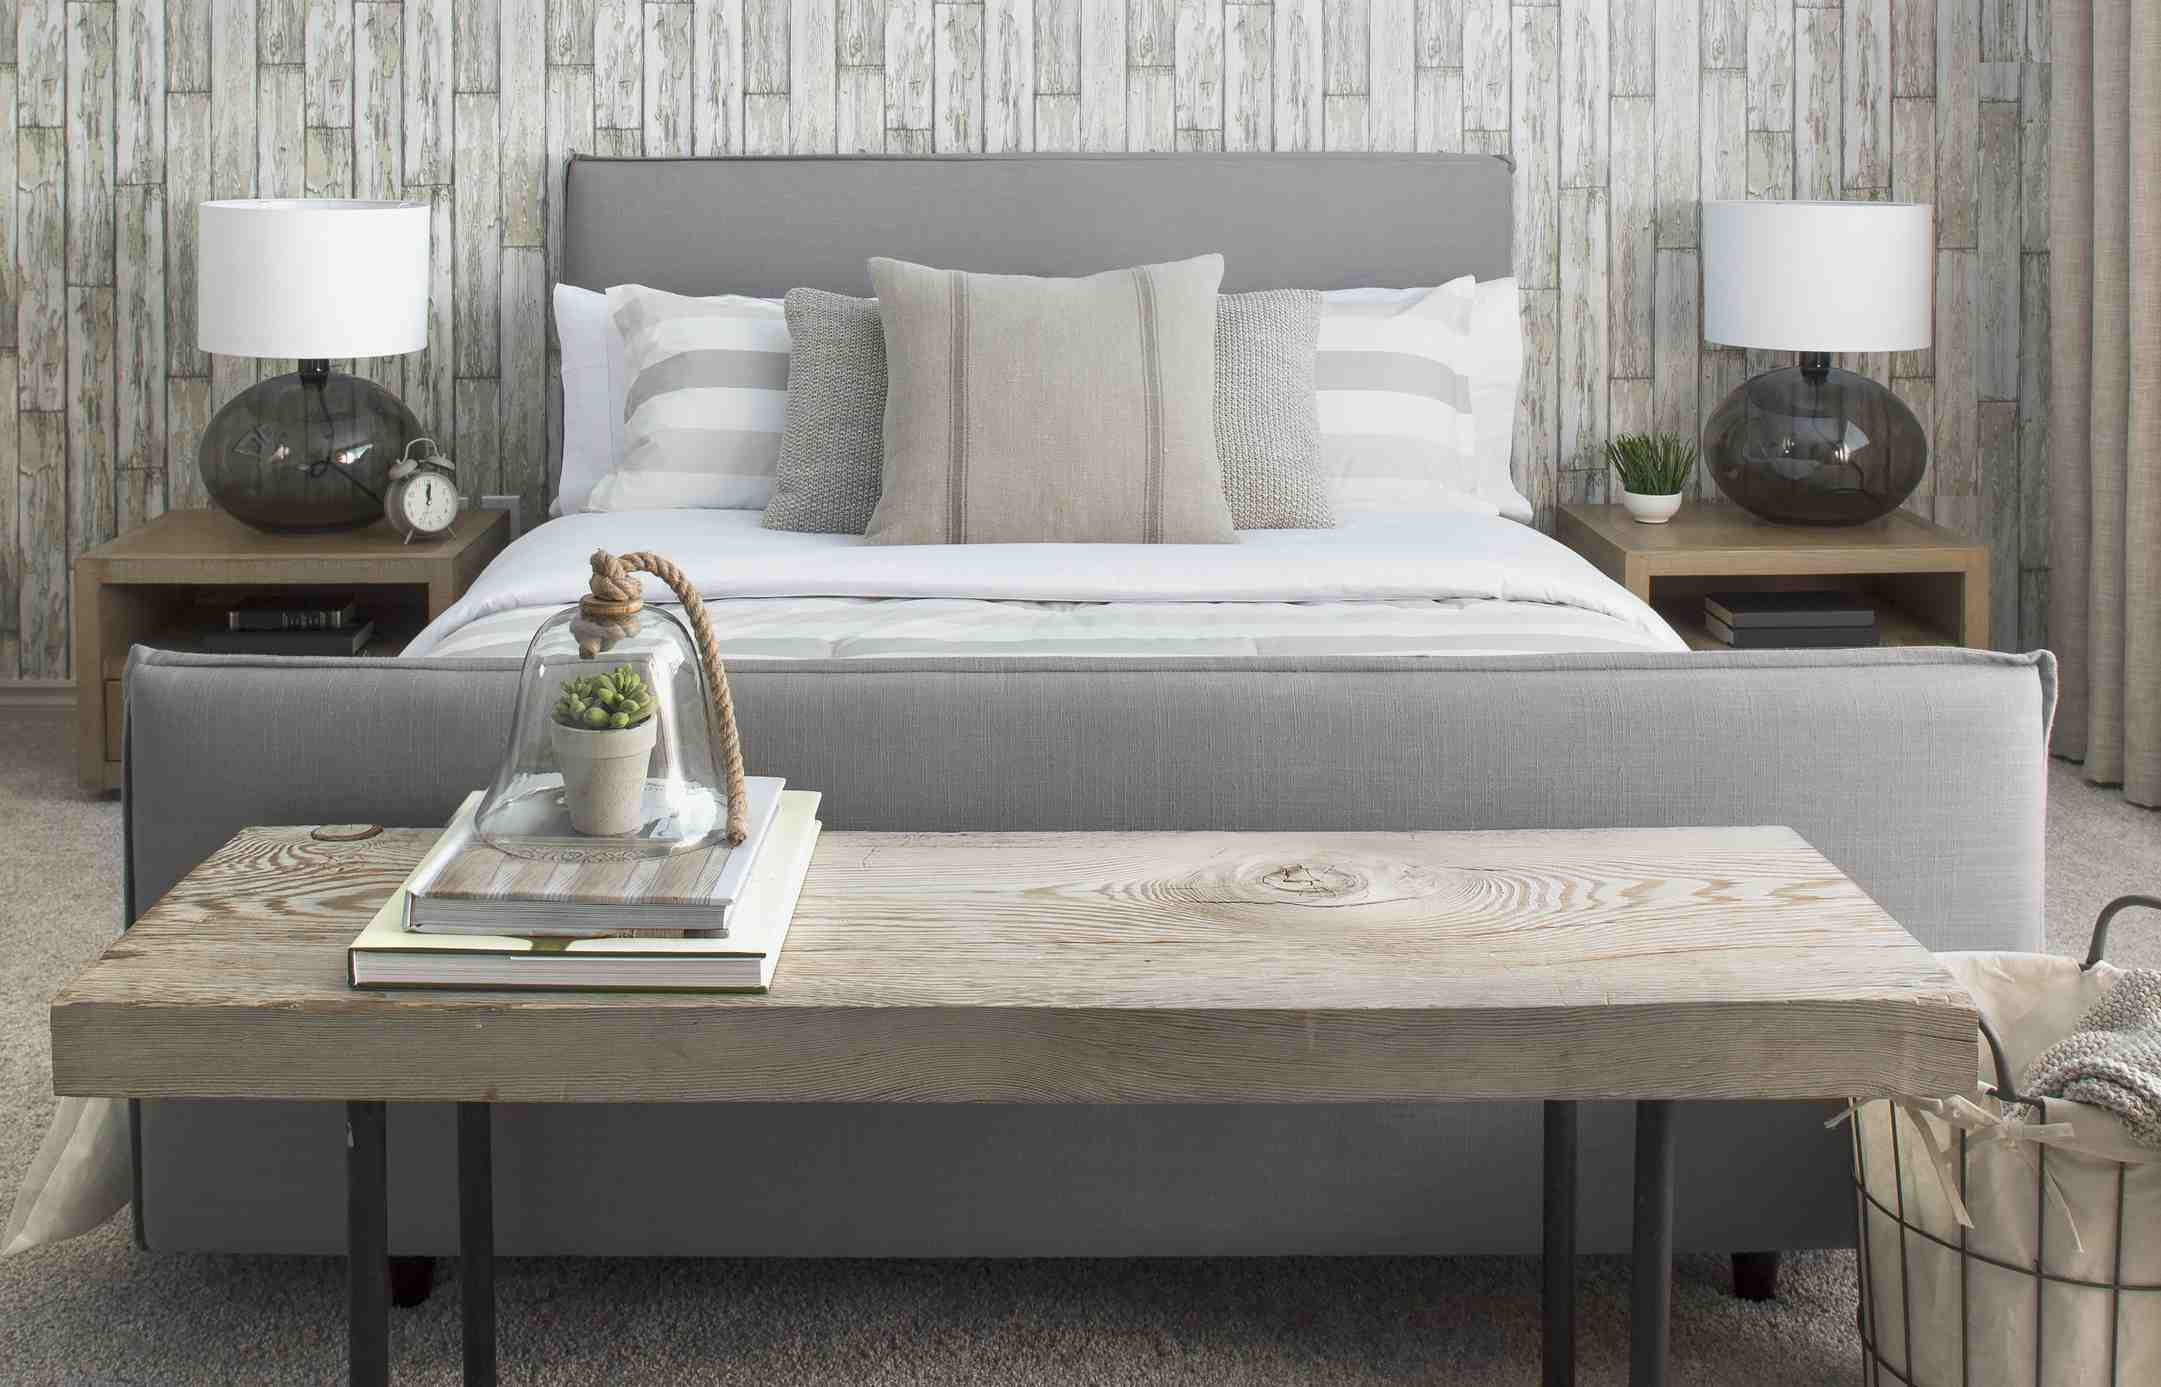 A well appointed bedroom with wood paneling